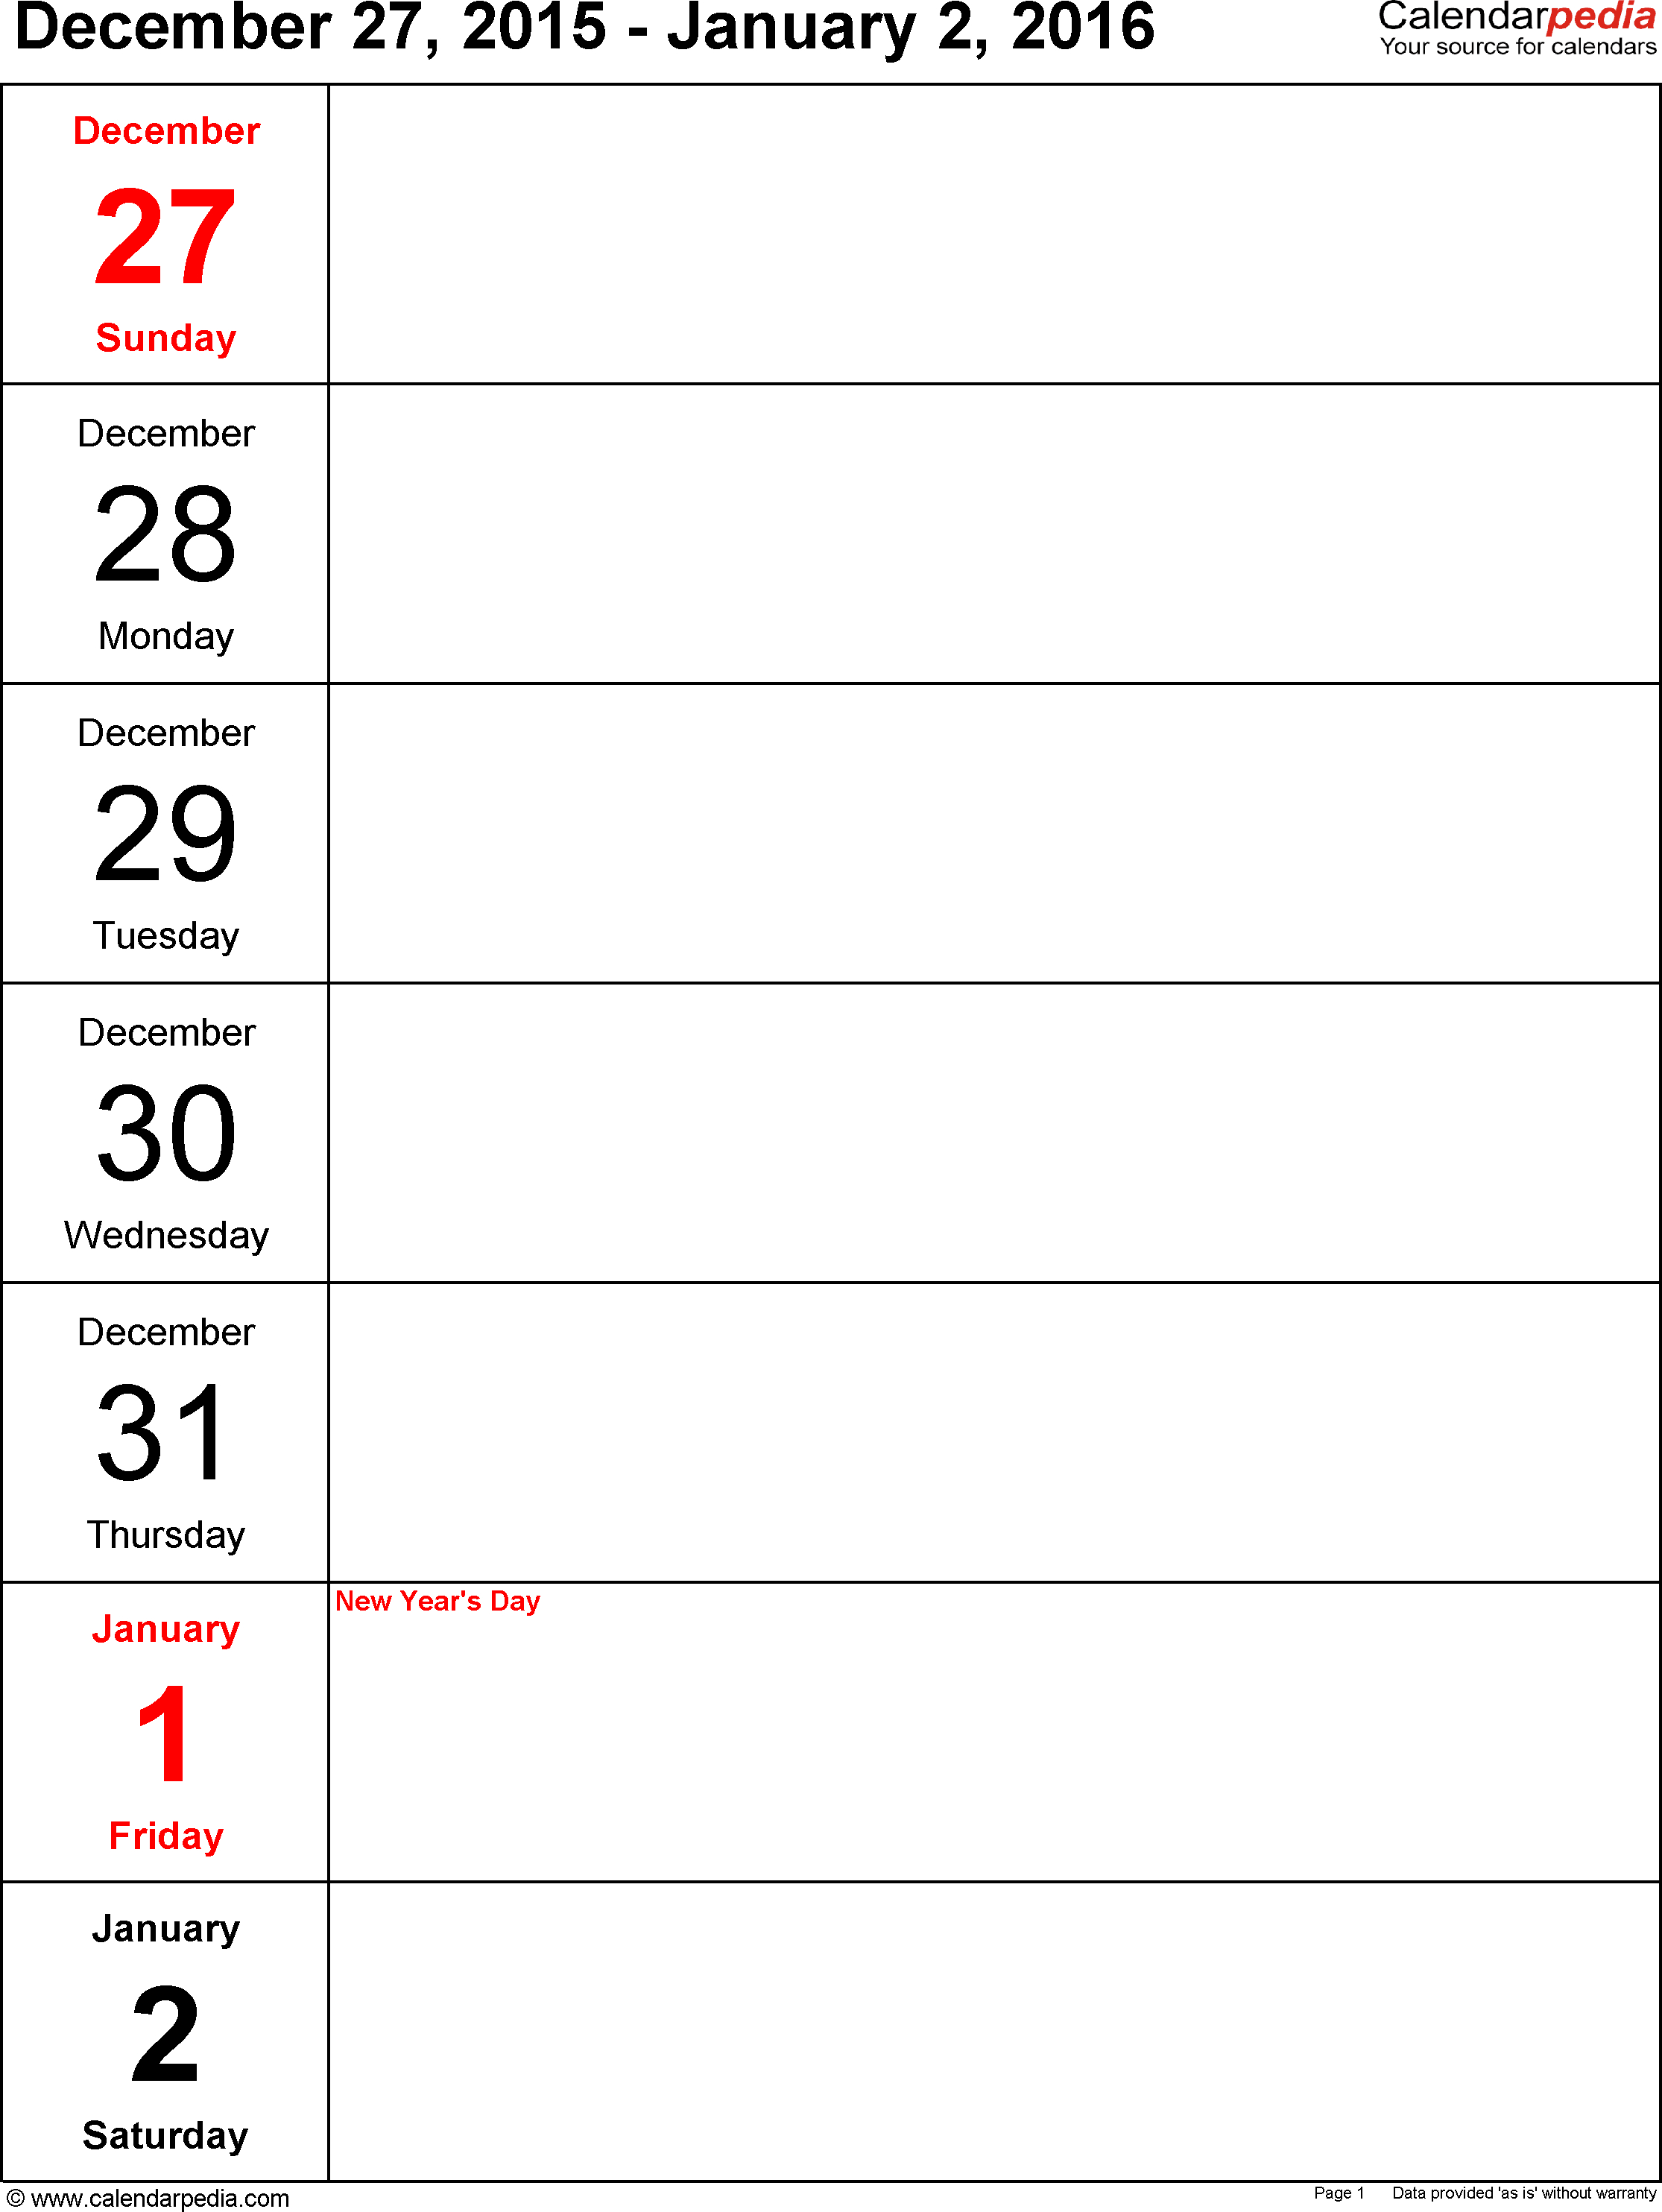 Weekly Calendar 2016 For Word - 12 Free Printable Templates with regard to 5 Day Calendar Template Free